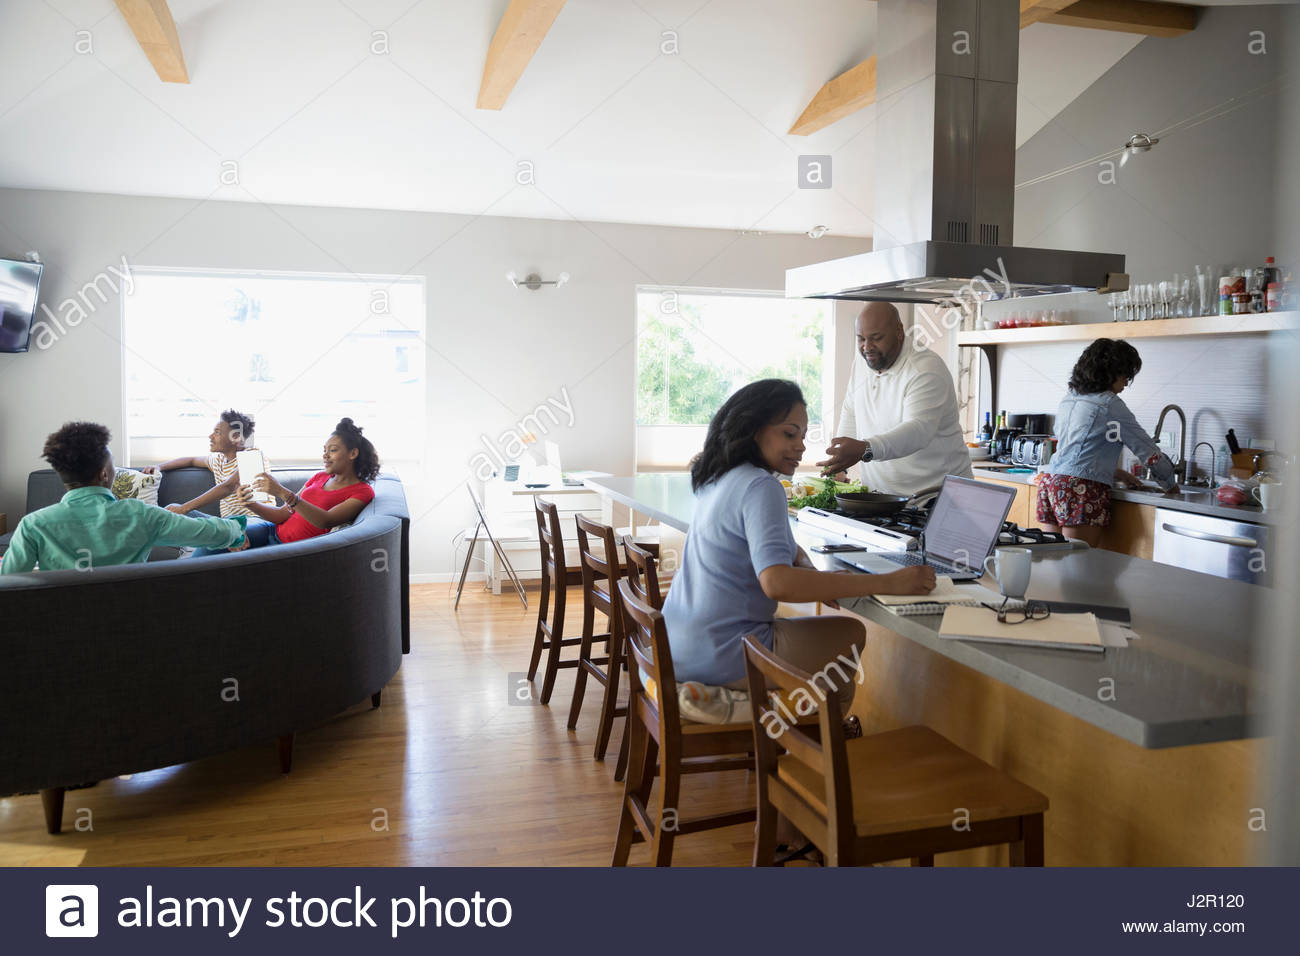 African American family cooking, working and watching TV in kitchen and living room - Stock Image